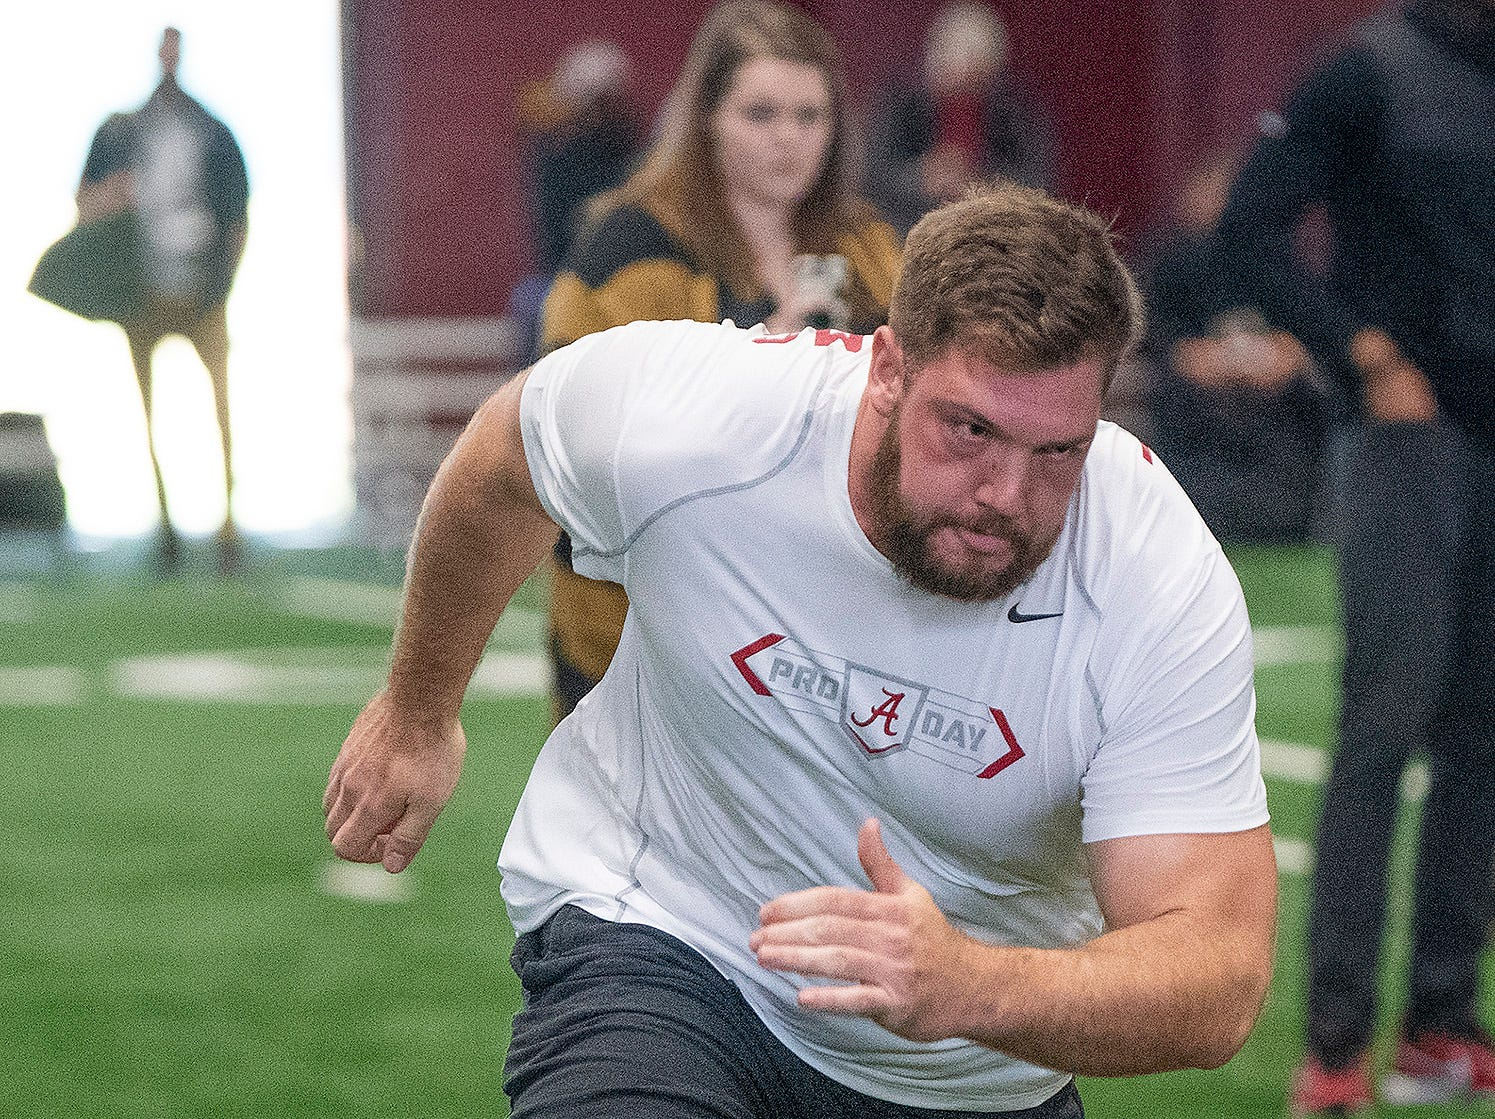 Alabama offensive lineman Jonah Williams (73) during Pro Day on the University of Alabama campus in Tuscaloosa, Ala., on Tuesday March 19, 2019.